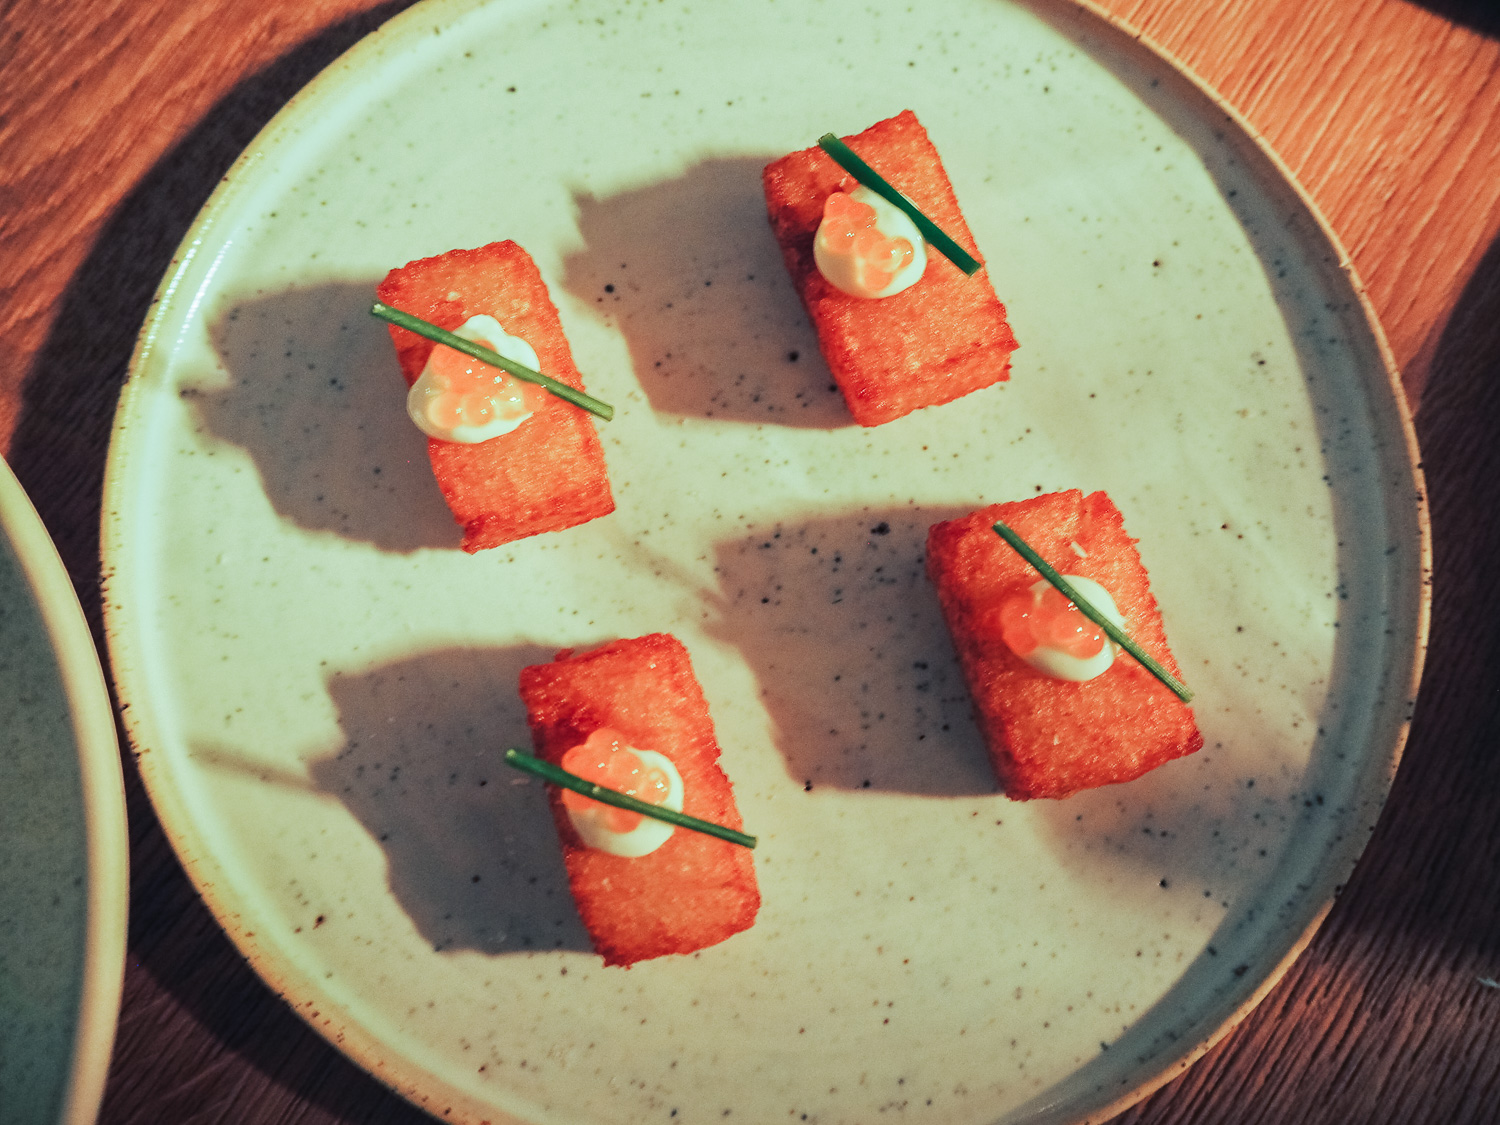 Fried potato gems with buttermilk and roe at Milk Beach in Queen's Park, London